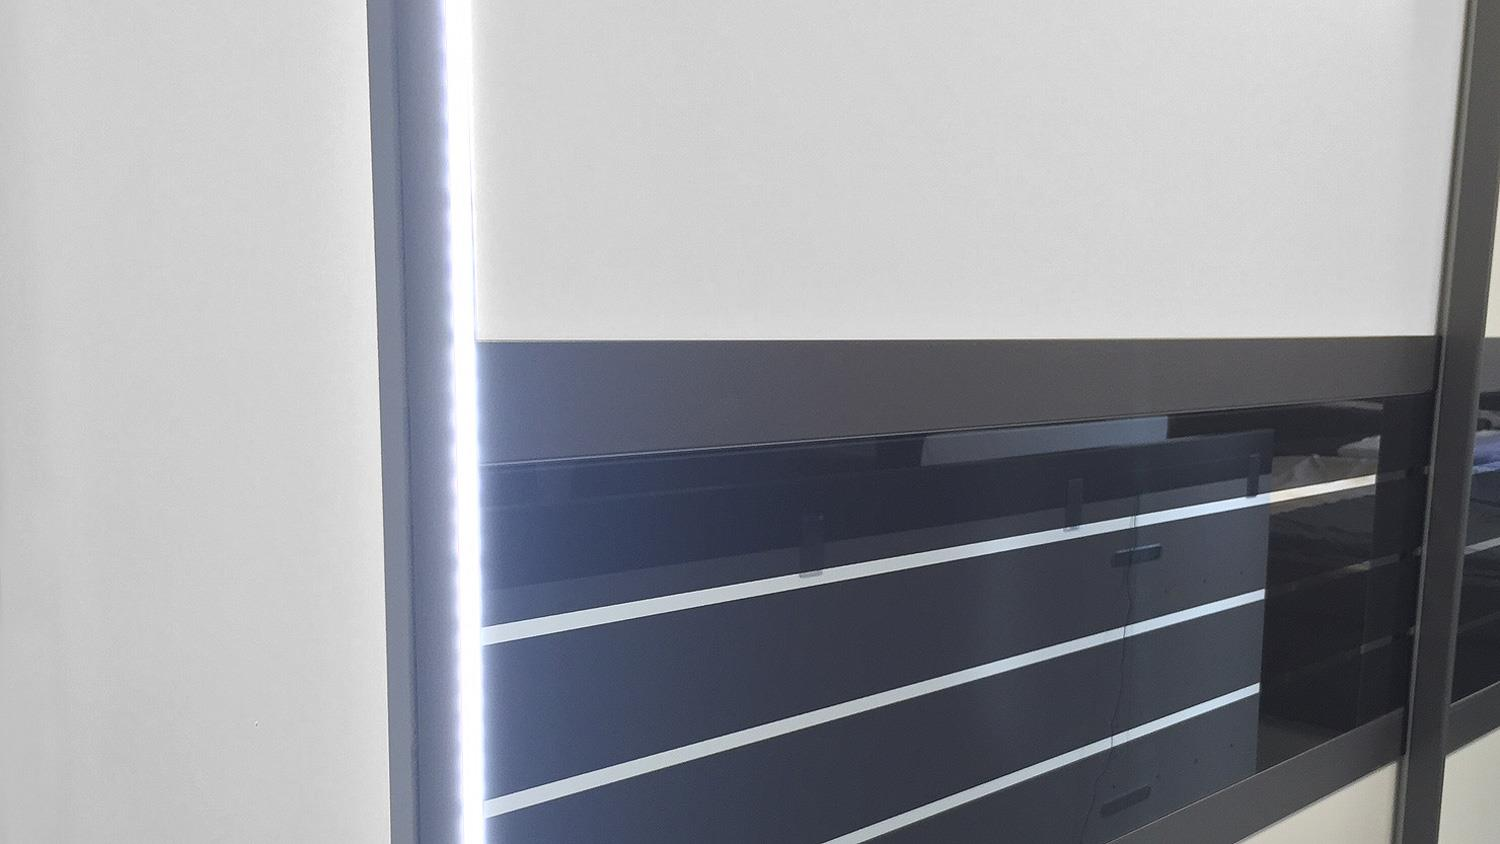 schwebet renschrank coleen wei basaltglas mit led 270 cm. Black Bedroom Furniture Sets. Home Design Ideas